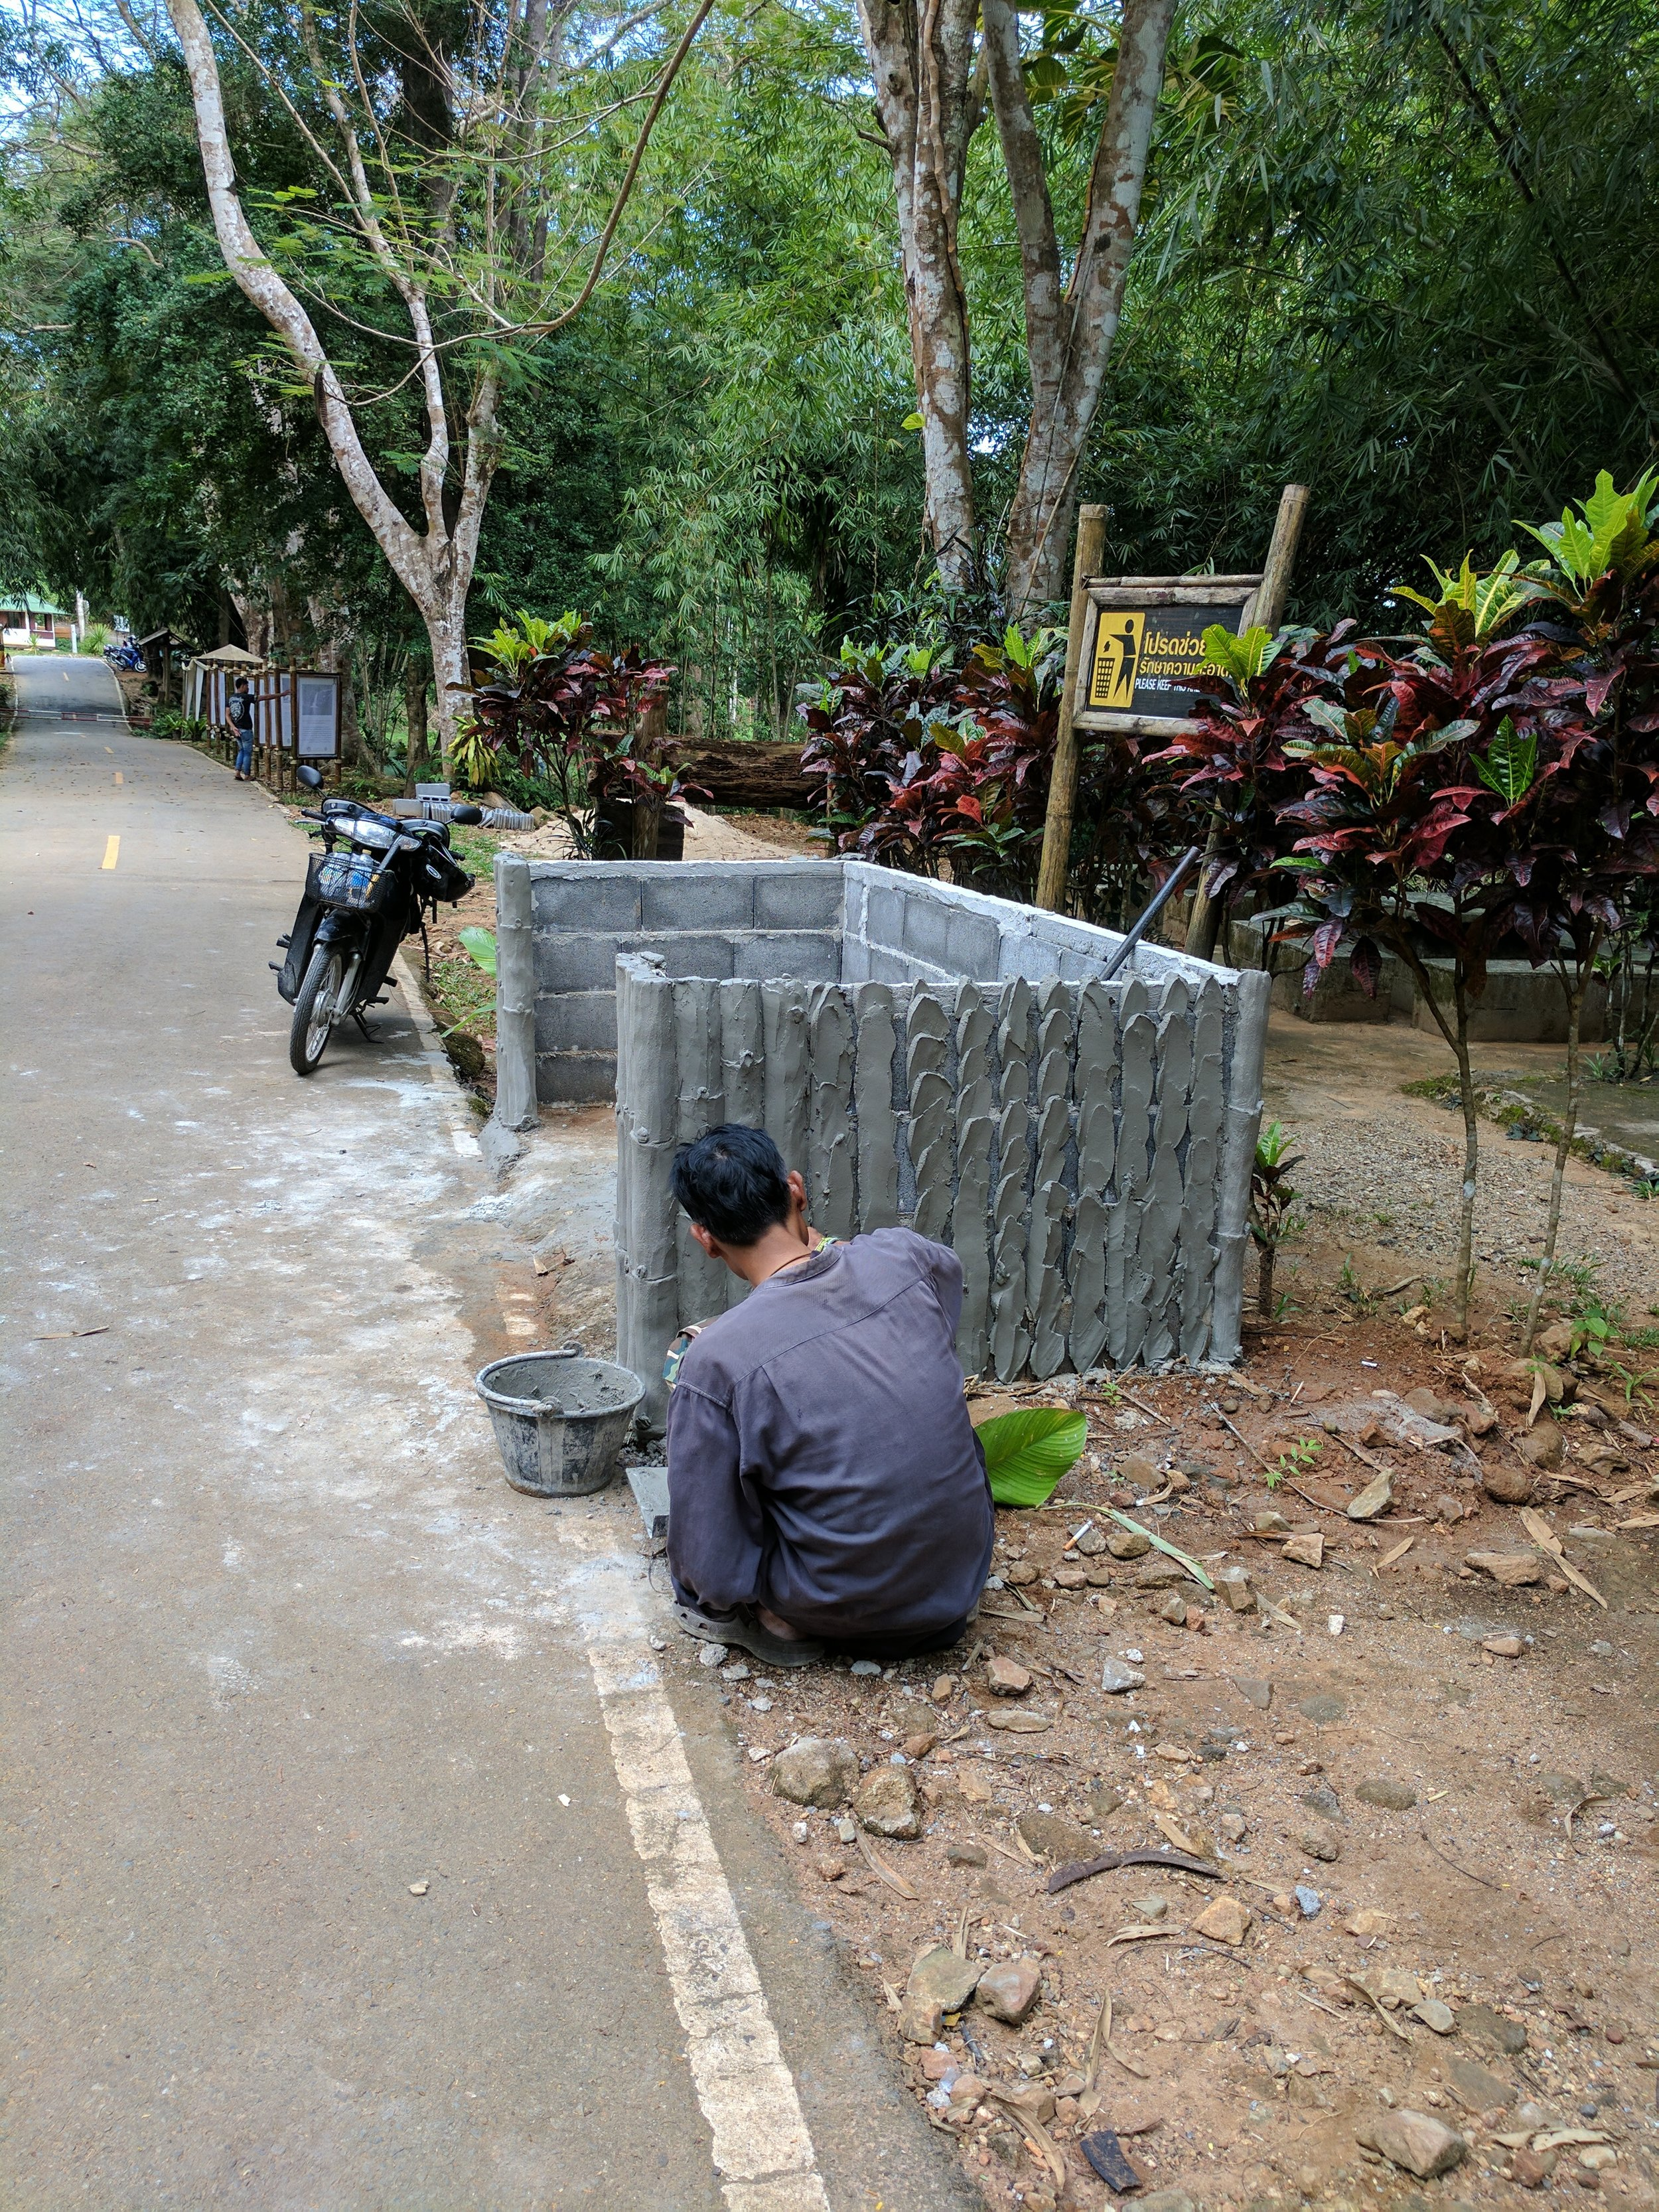 In a national park in Phuket, I passed a worker creating a cement fence around some trash cans.